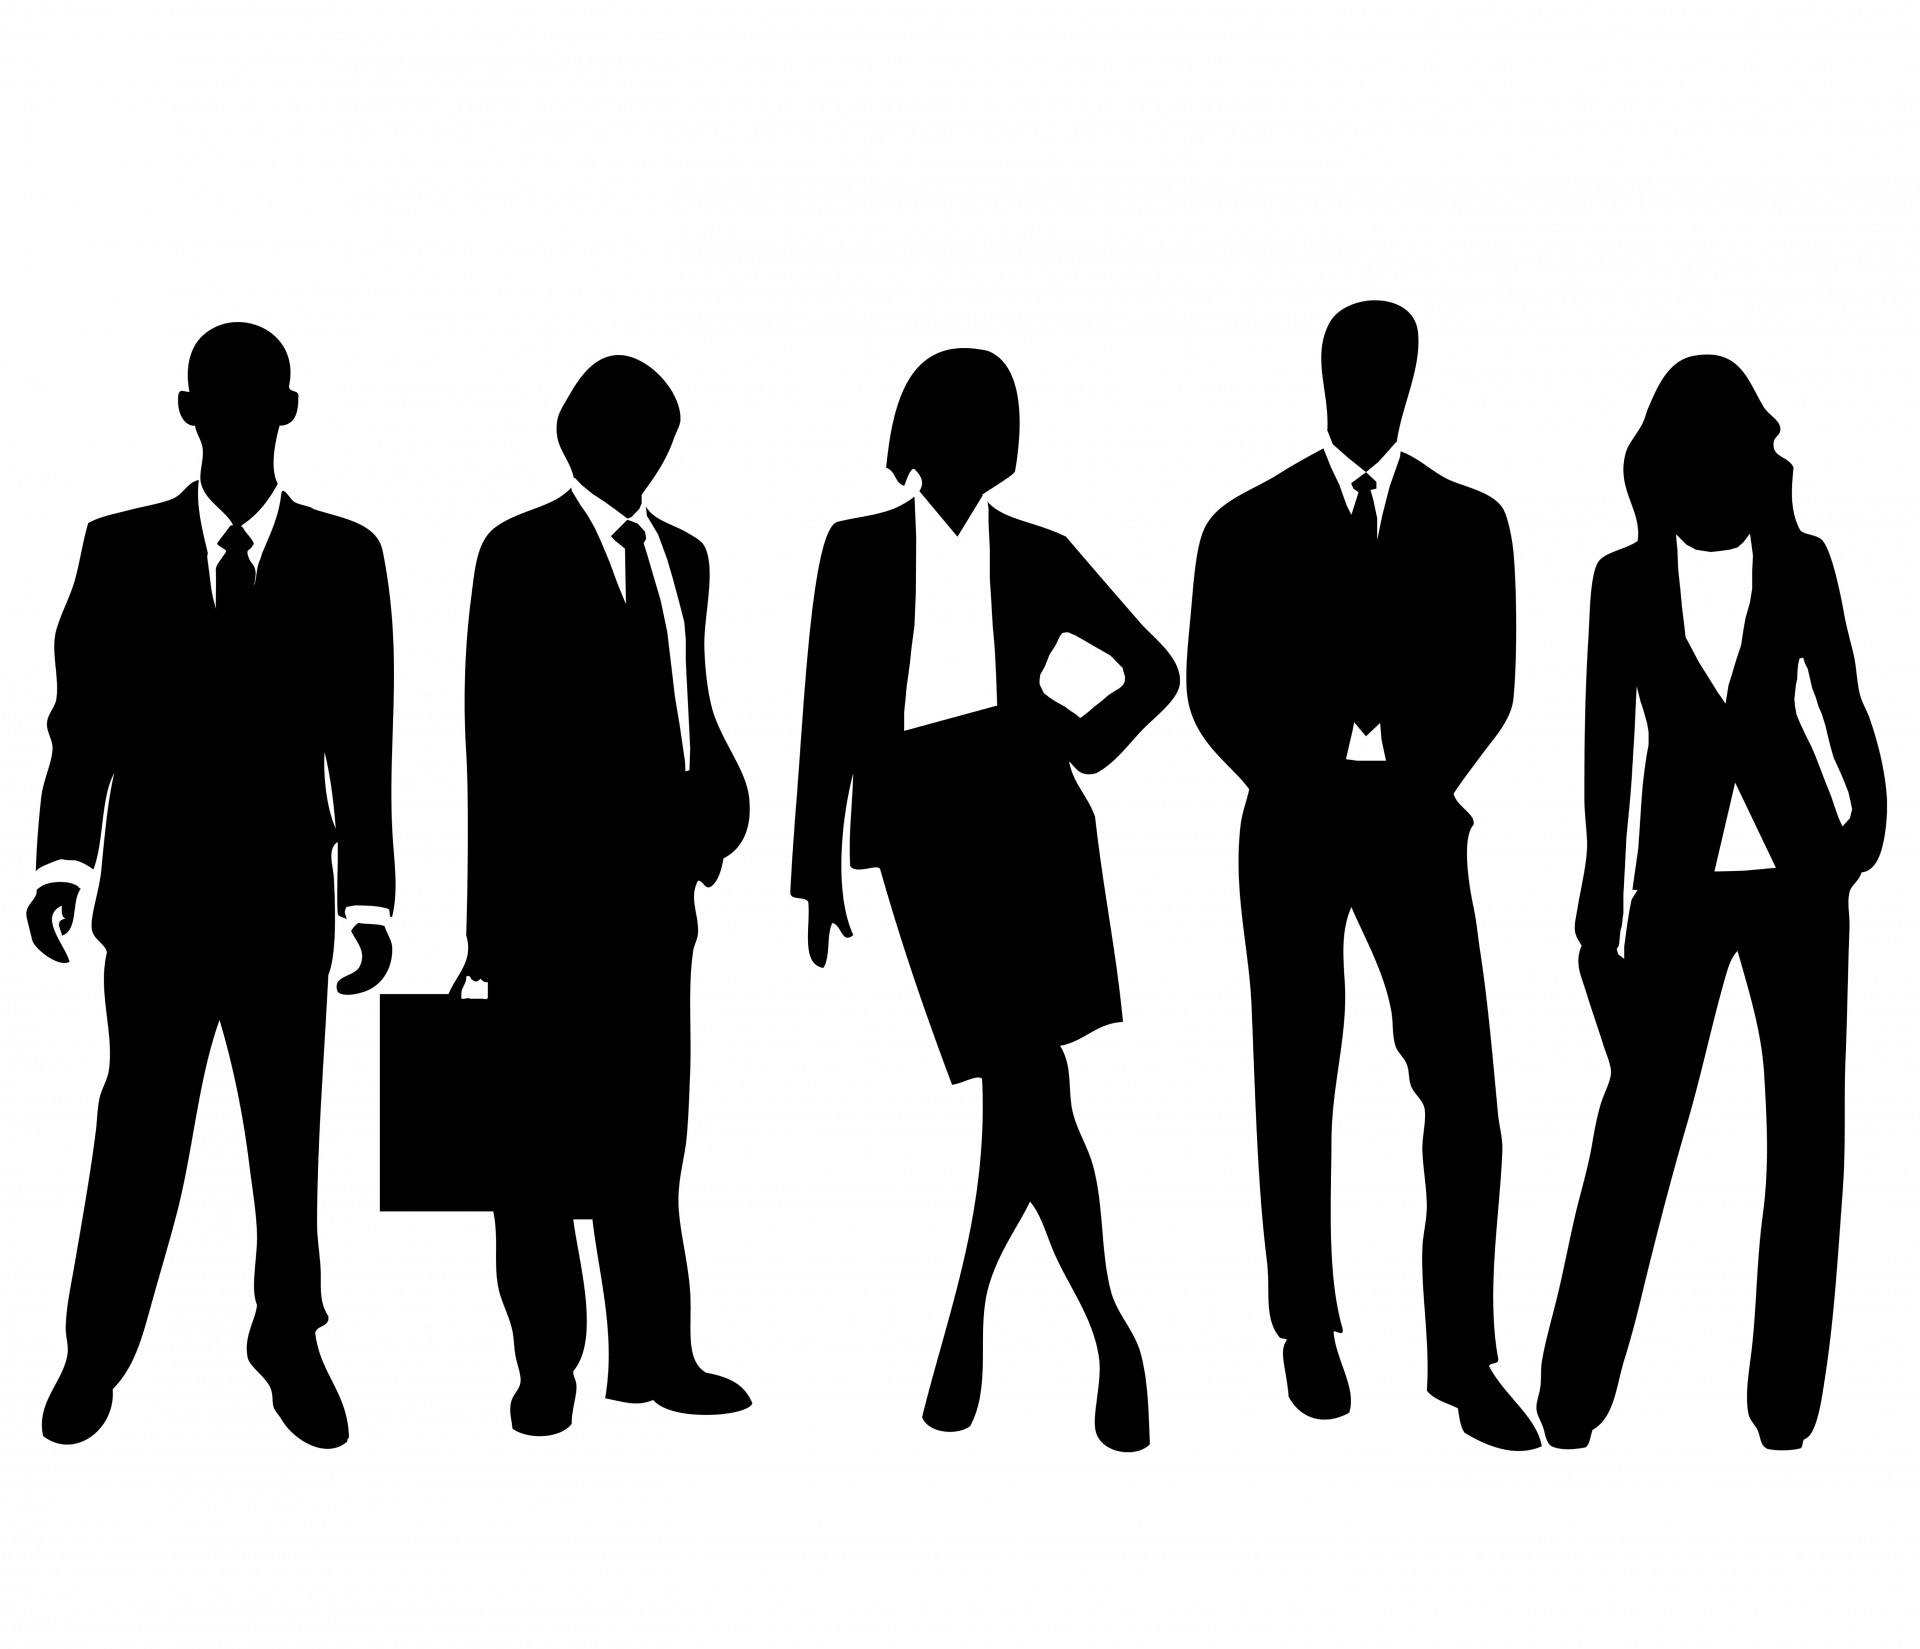 collection of people. Business clipart transparent background